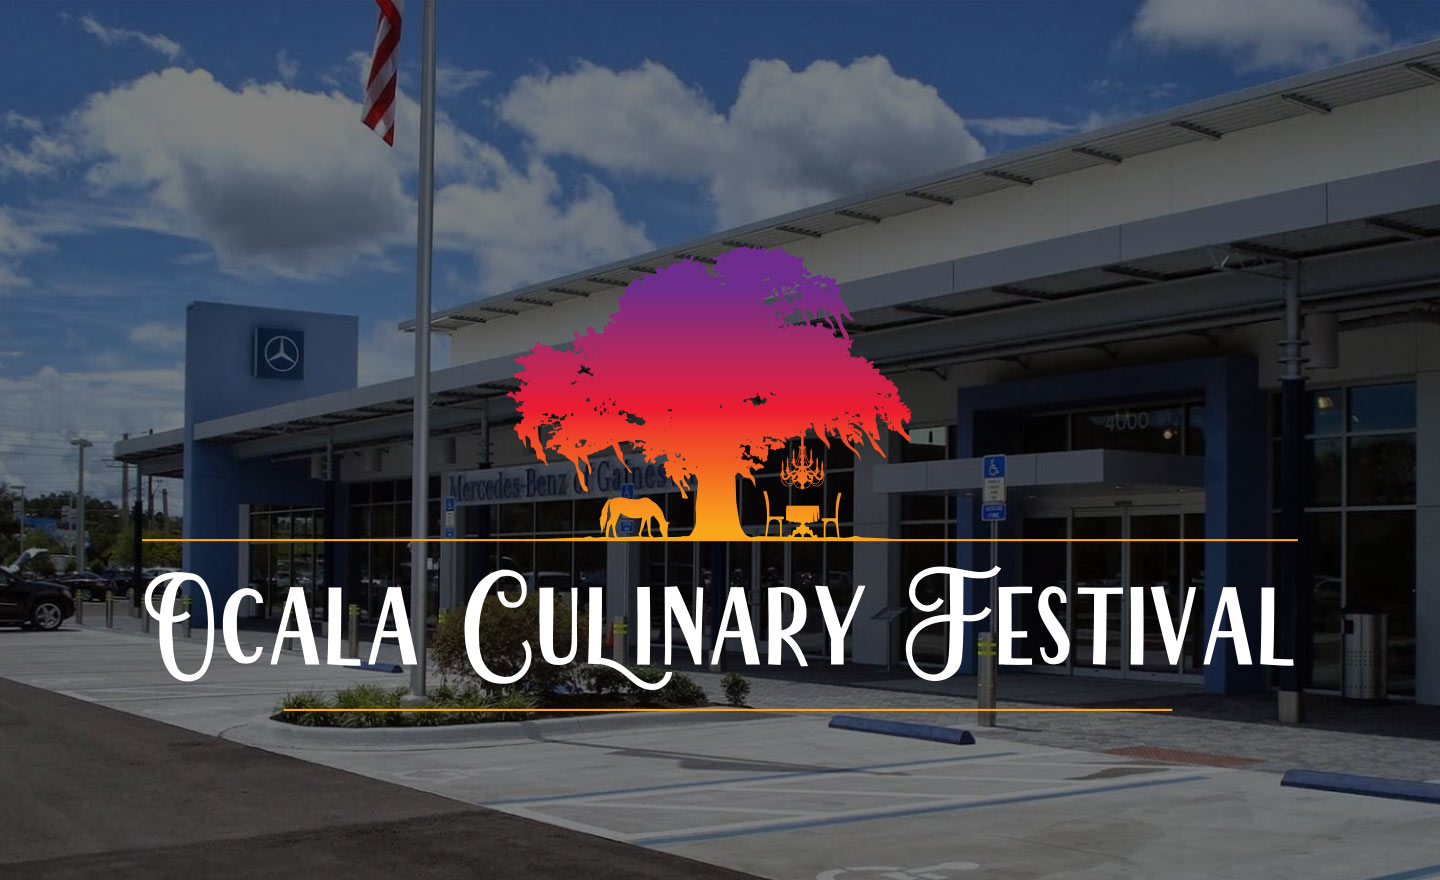 Mercedes-Benz of Gainesville dealership & sponsor of the Ocala Culinary Festival